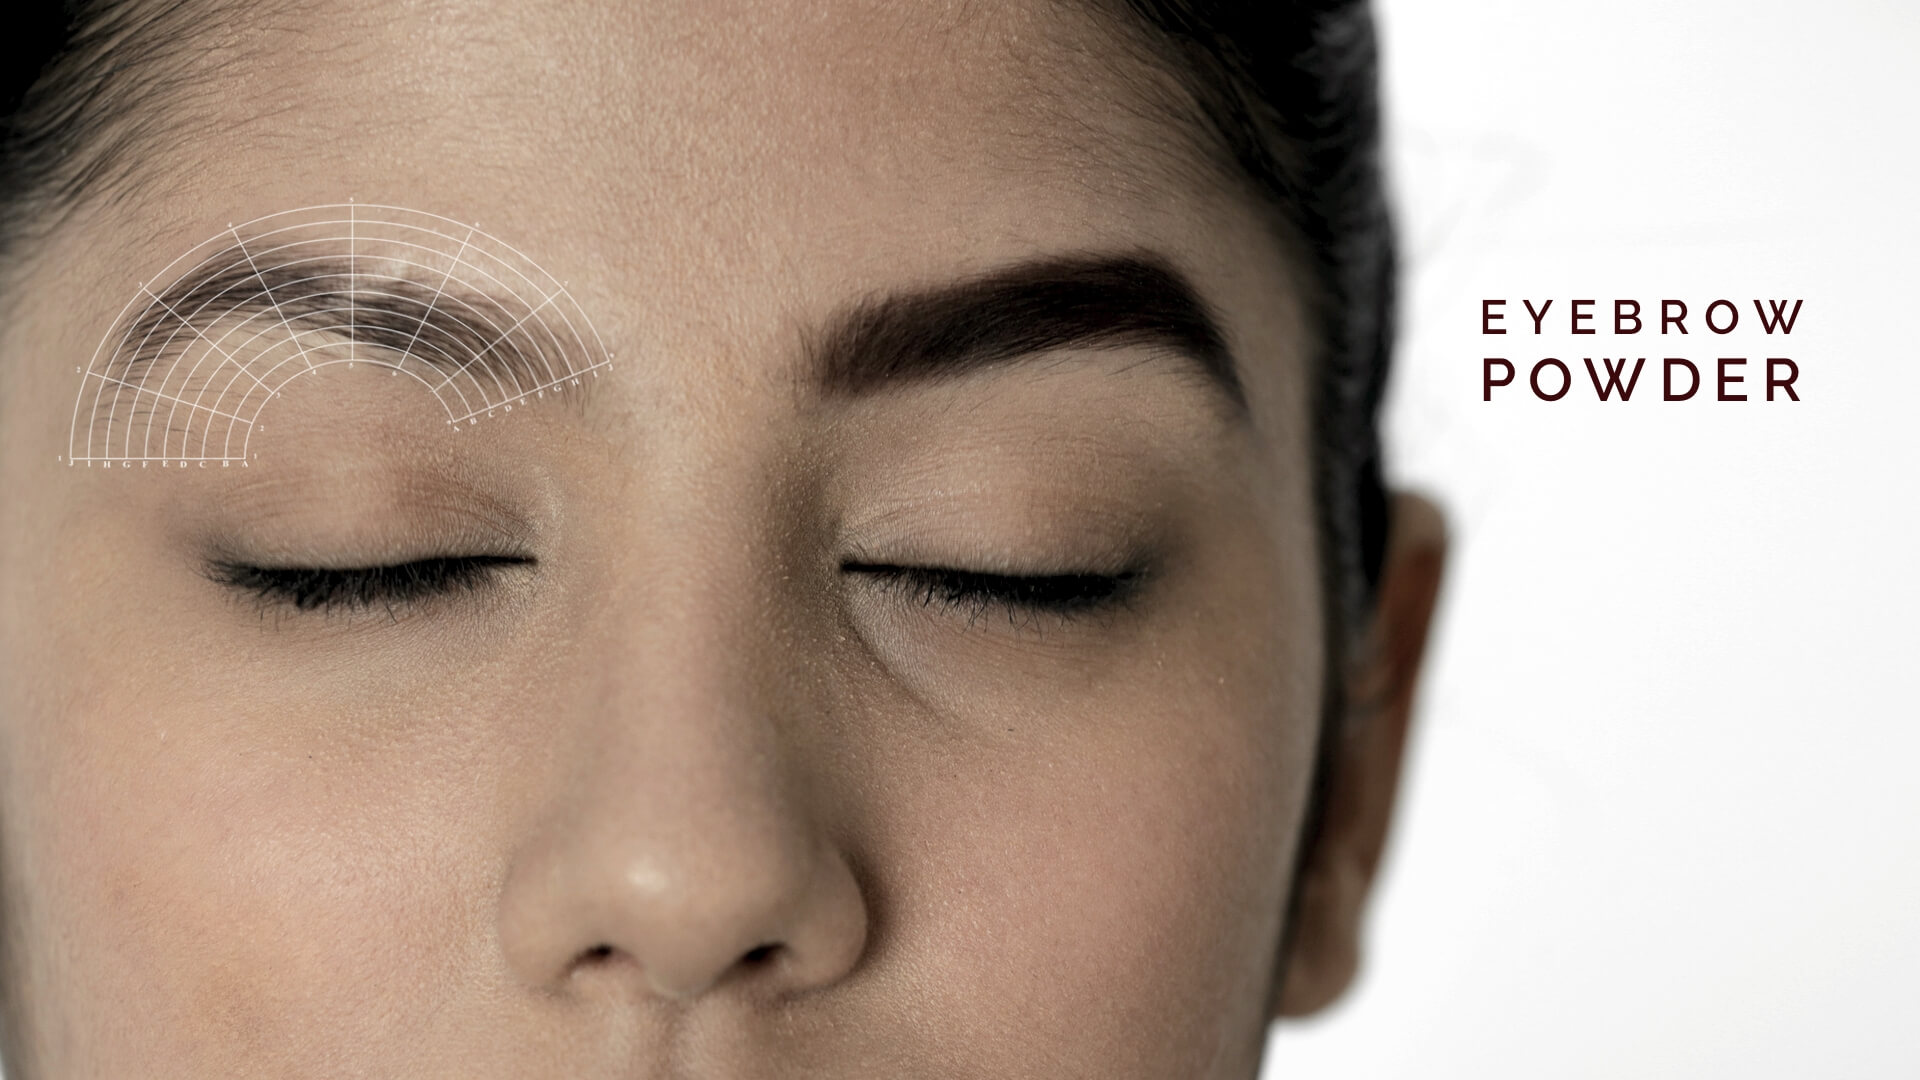 Eyebrow Wax And Powder Application